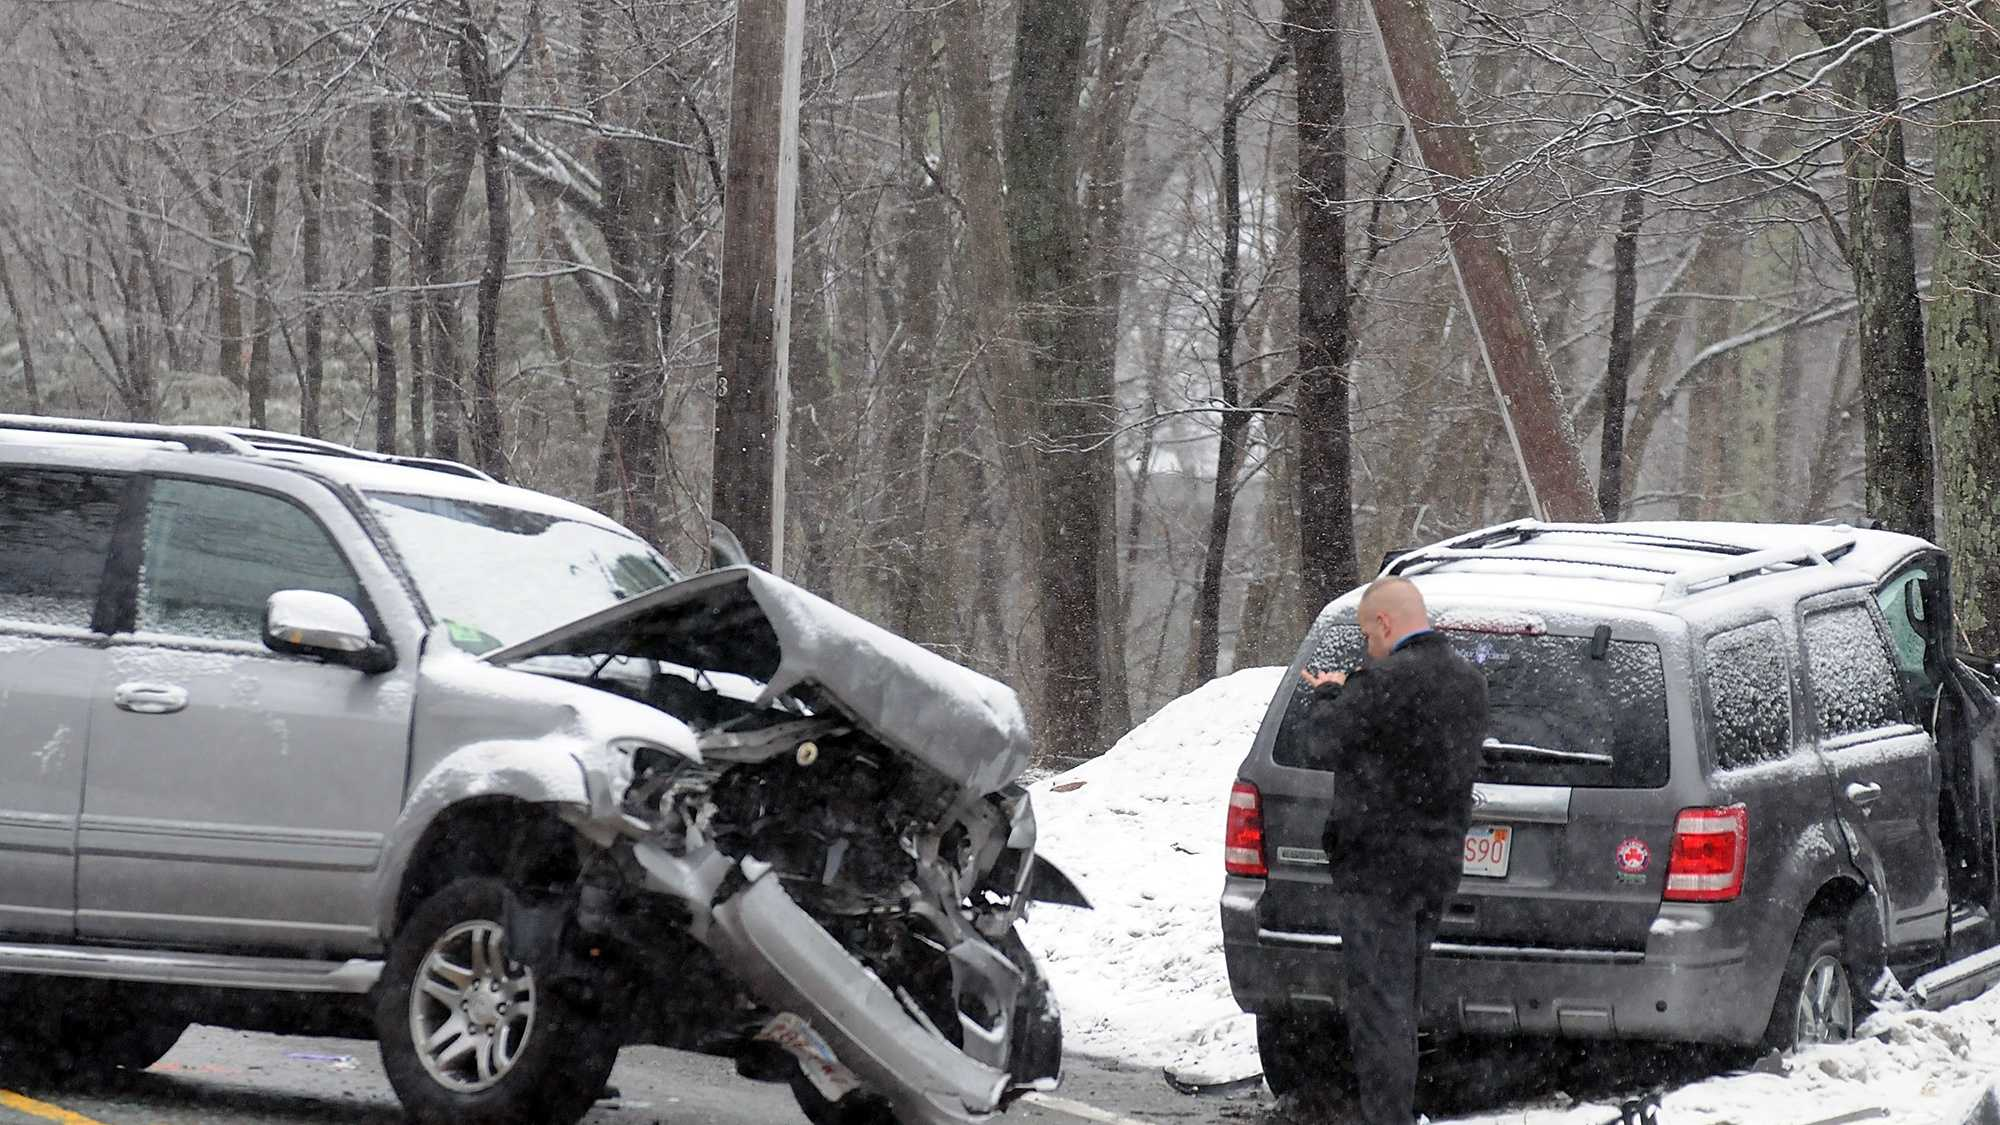 An investigator photographs the scene on Milford Street in Upton. Drunken driving is being blamed for the crash.